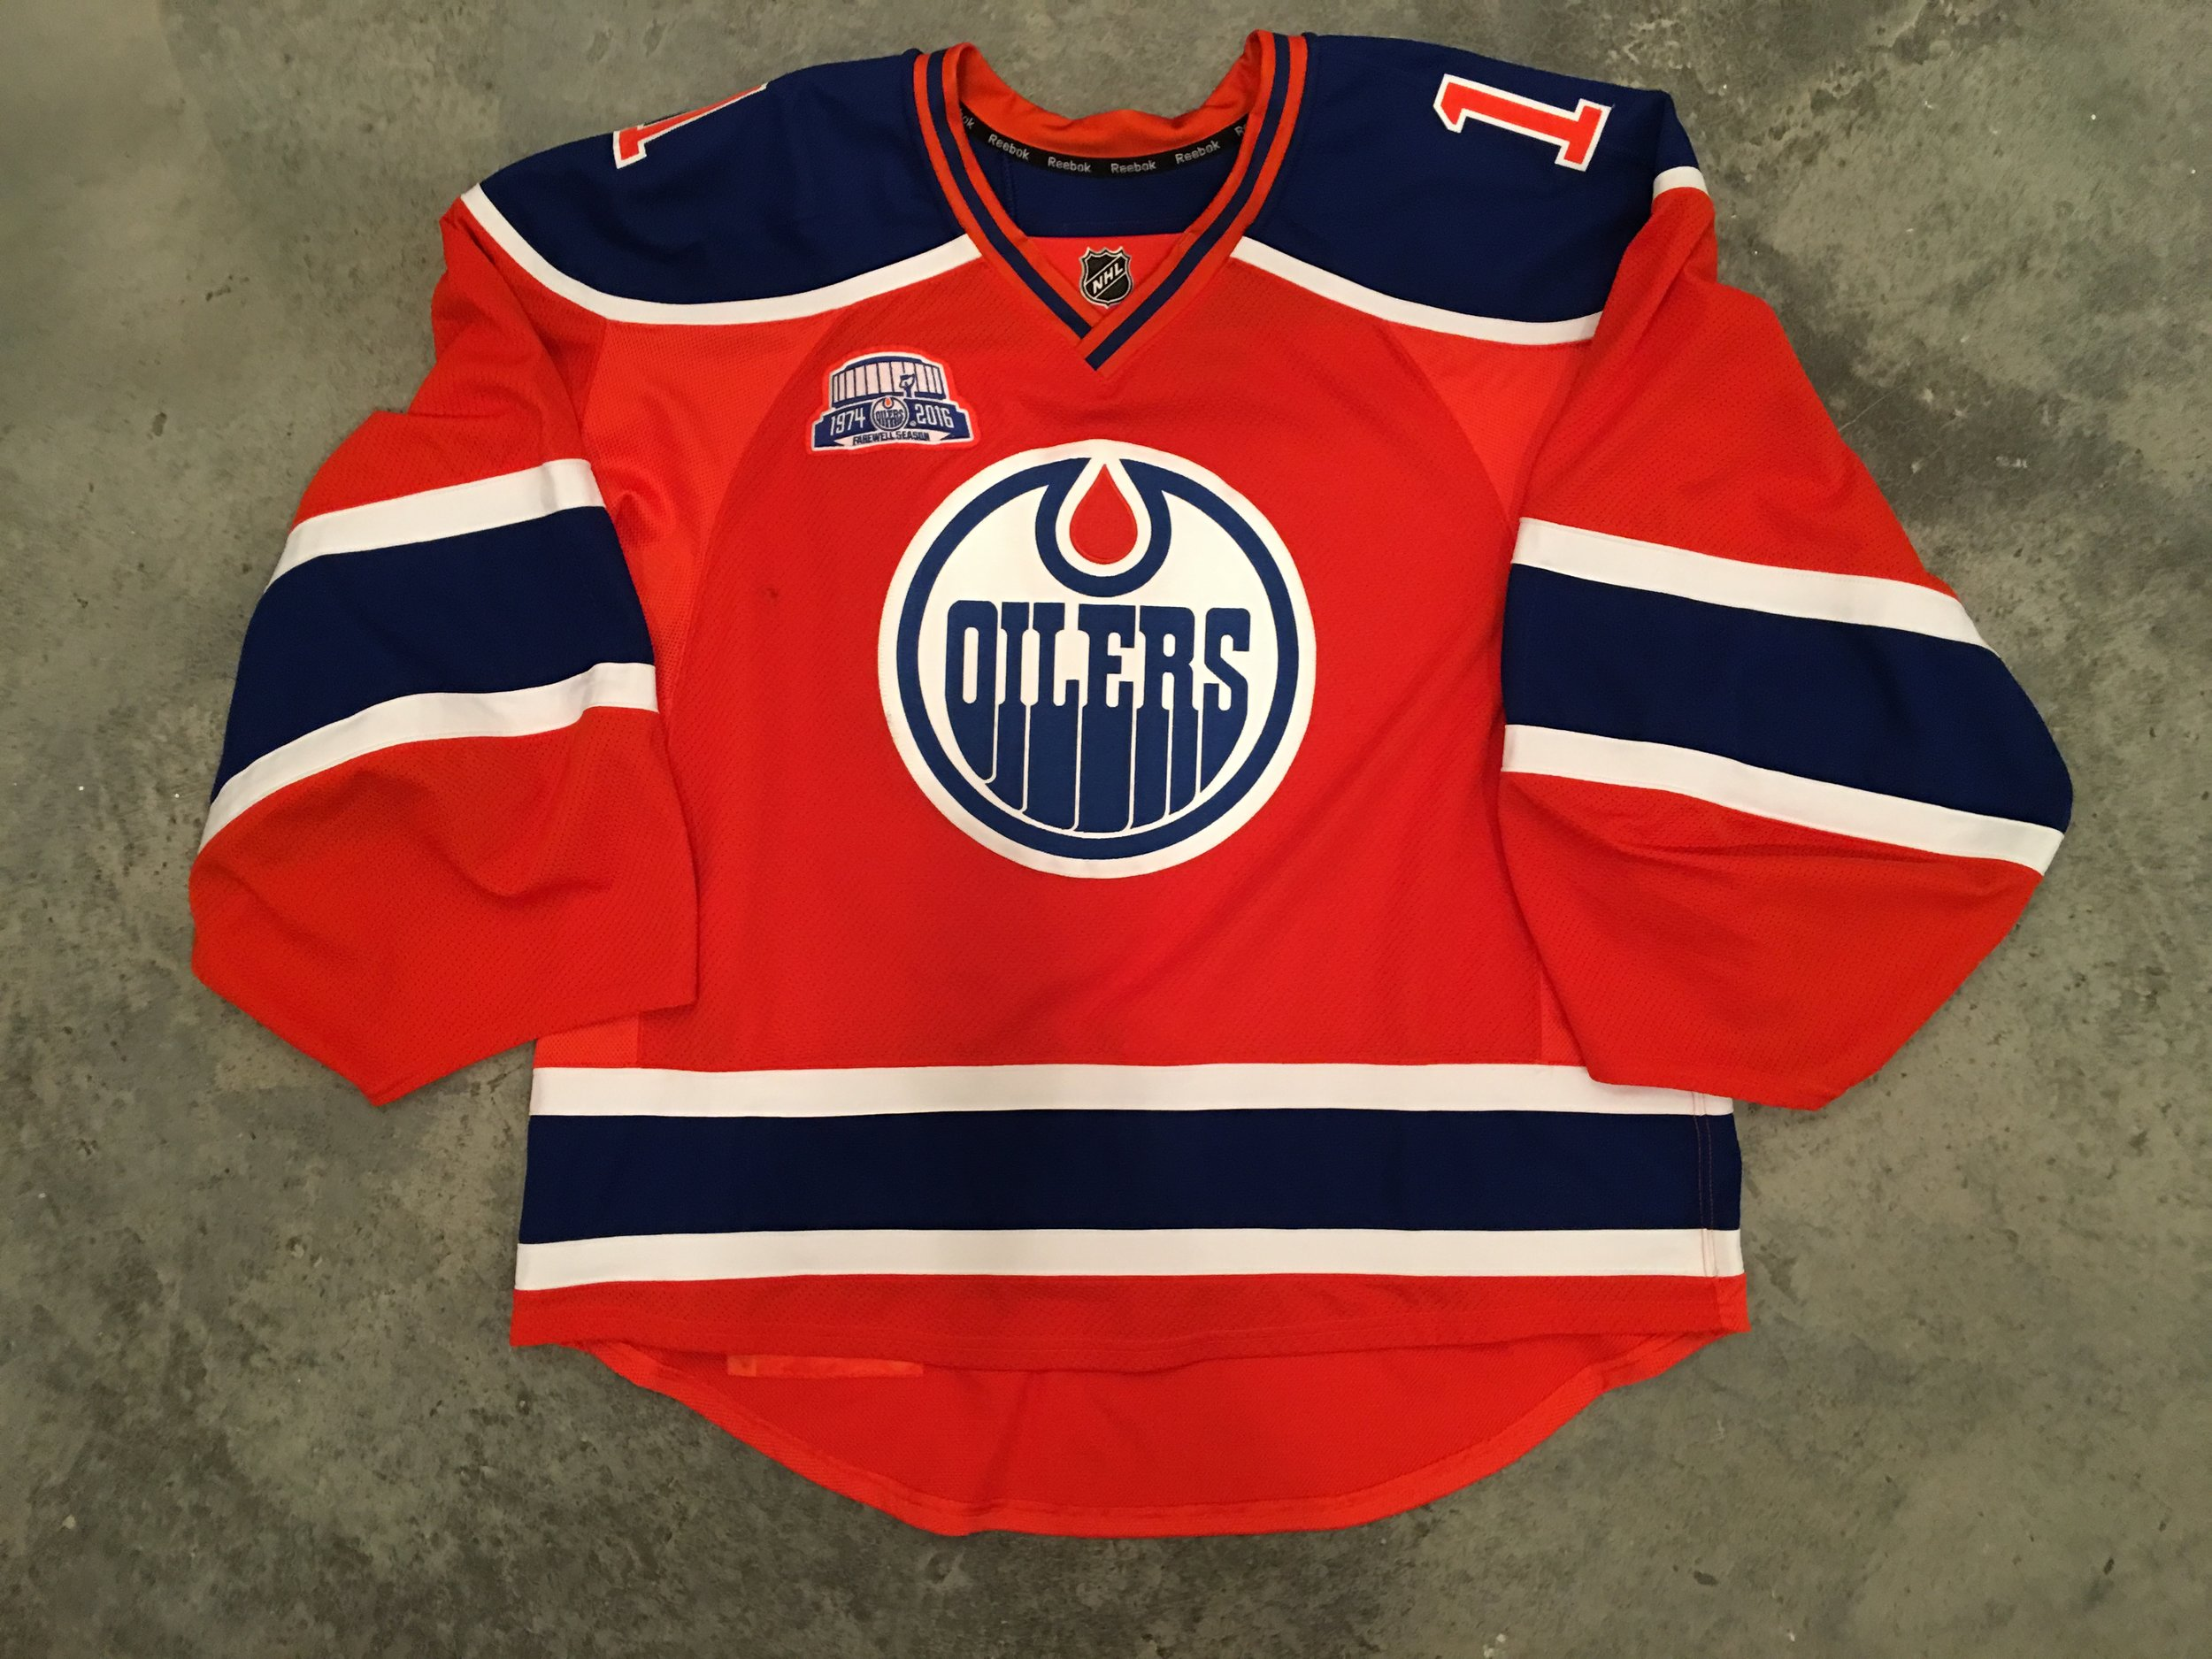 2015-16 Louis Broisett game worn alternate jersey with Rexall Place Farewell patch.